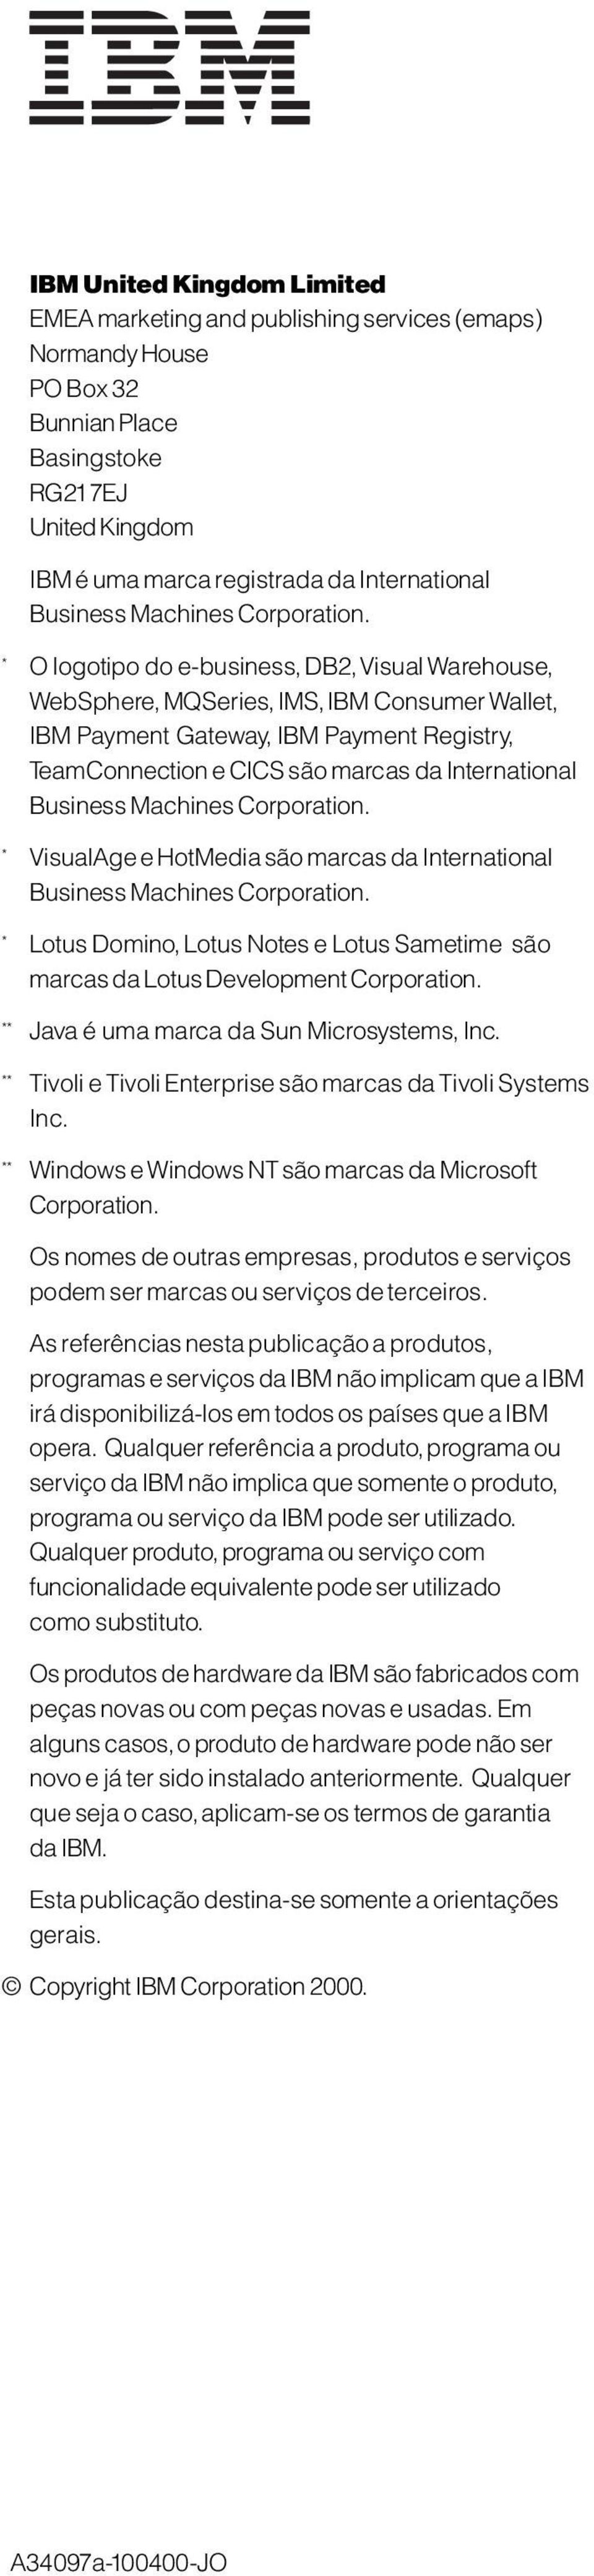 * O logotipo do e-business, DB2, Visual Warehouse, WebSphere, MQSeries, IMS, IBM Consumer Wallet, IBM Payment Gateway, IBM Payment Registry, TeamConnection e CICS são marcas da International  *